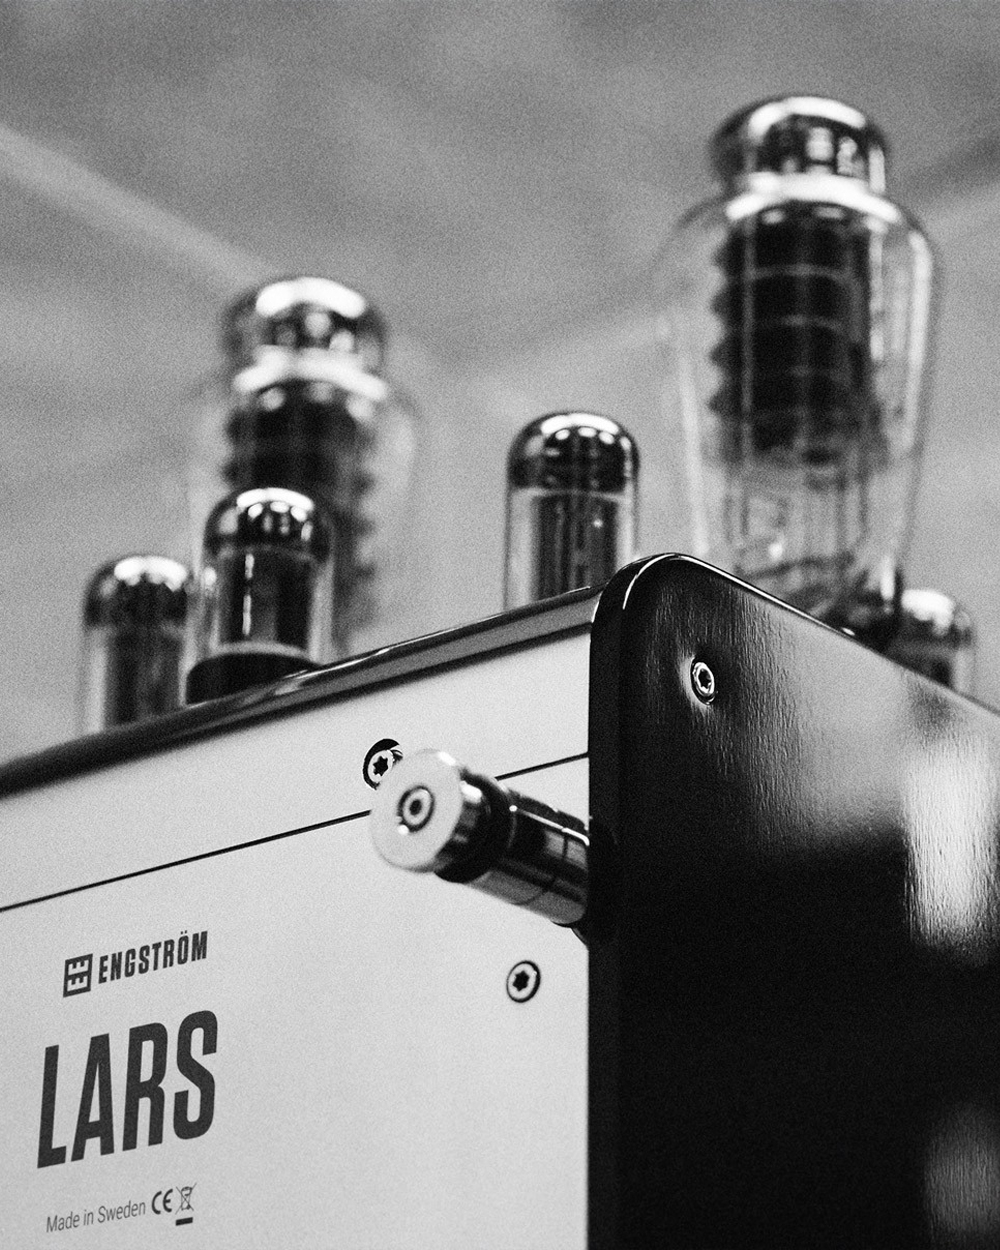 LARS - ..POWER AMPLIFIERNamed after our co-founder Lars Engström, LARS is our critically acclaimed power amplifier. Each unit features the world's best components and materials, hand-selected by Lars himself, alongside our own custom parts.